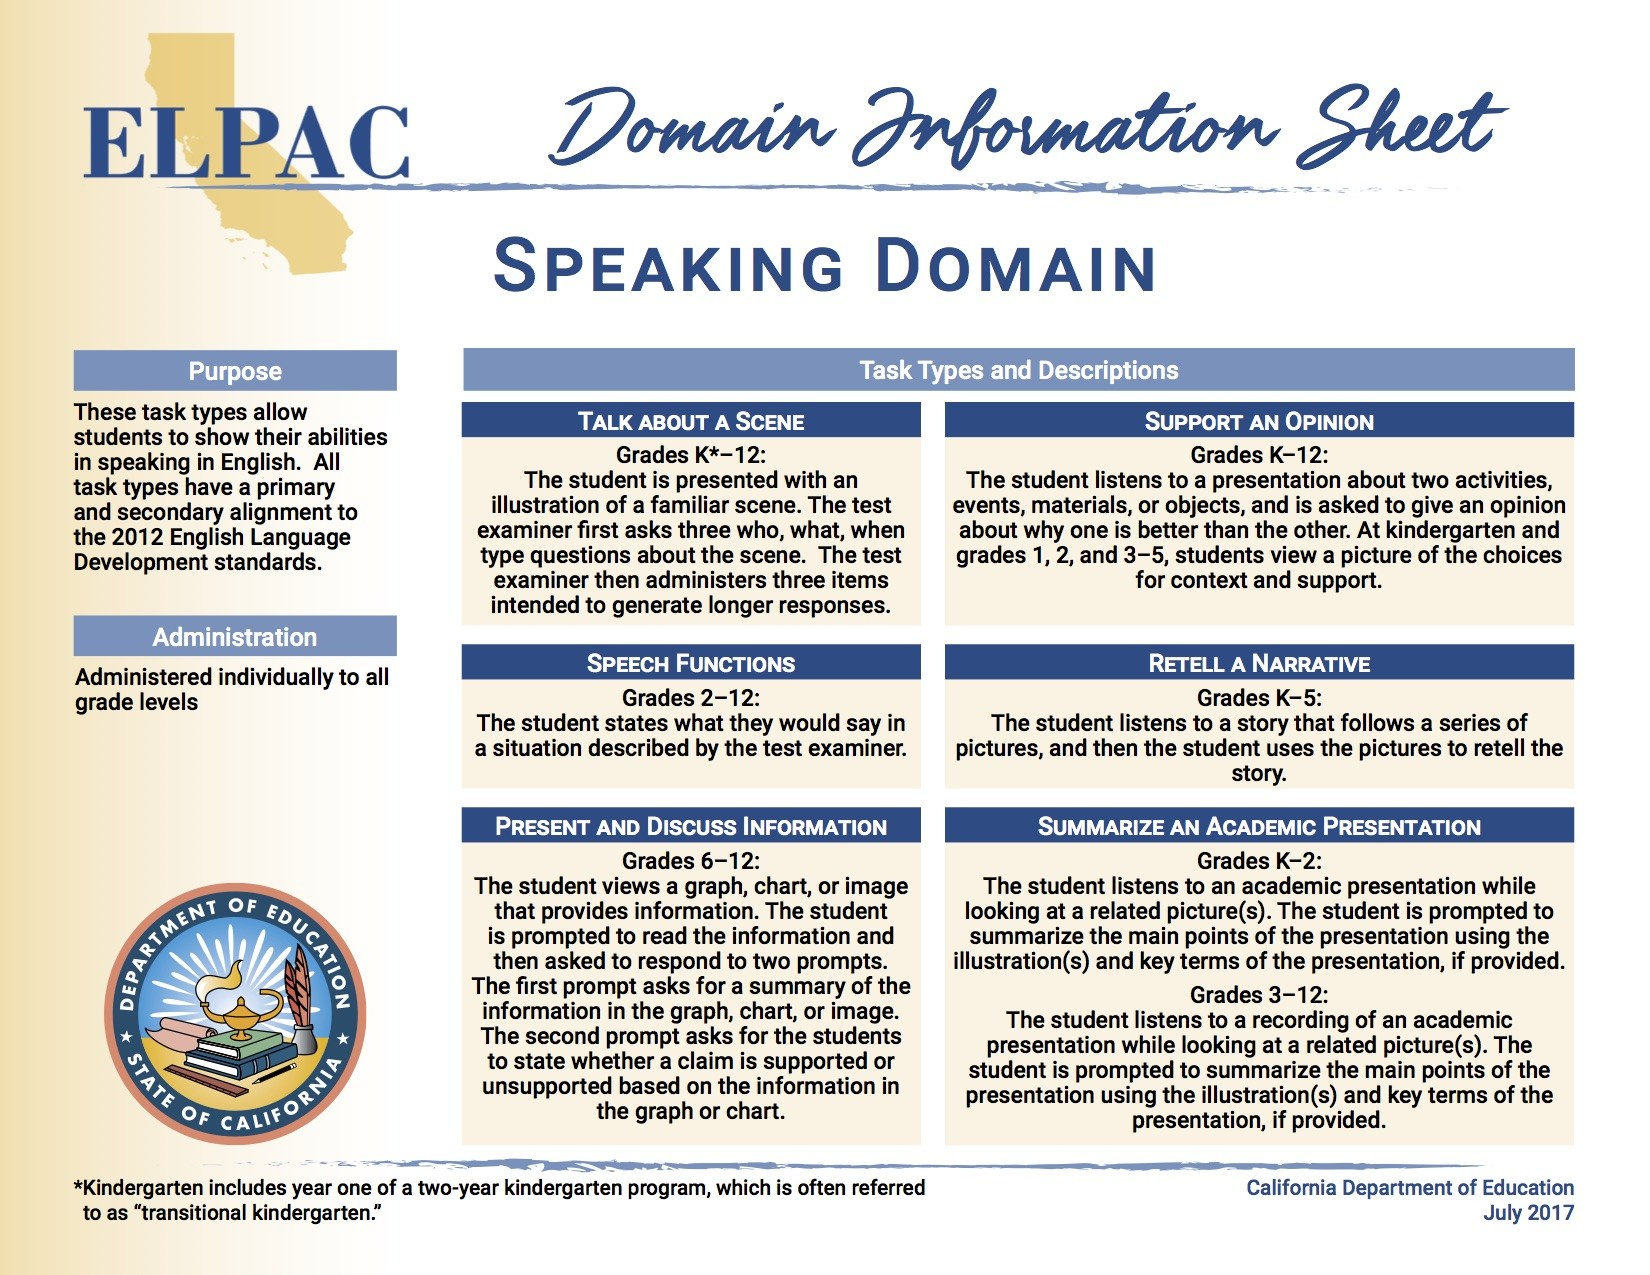 ELPAC Speaking Domain Information Sheet